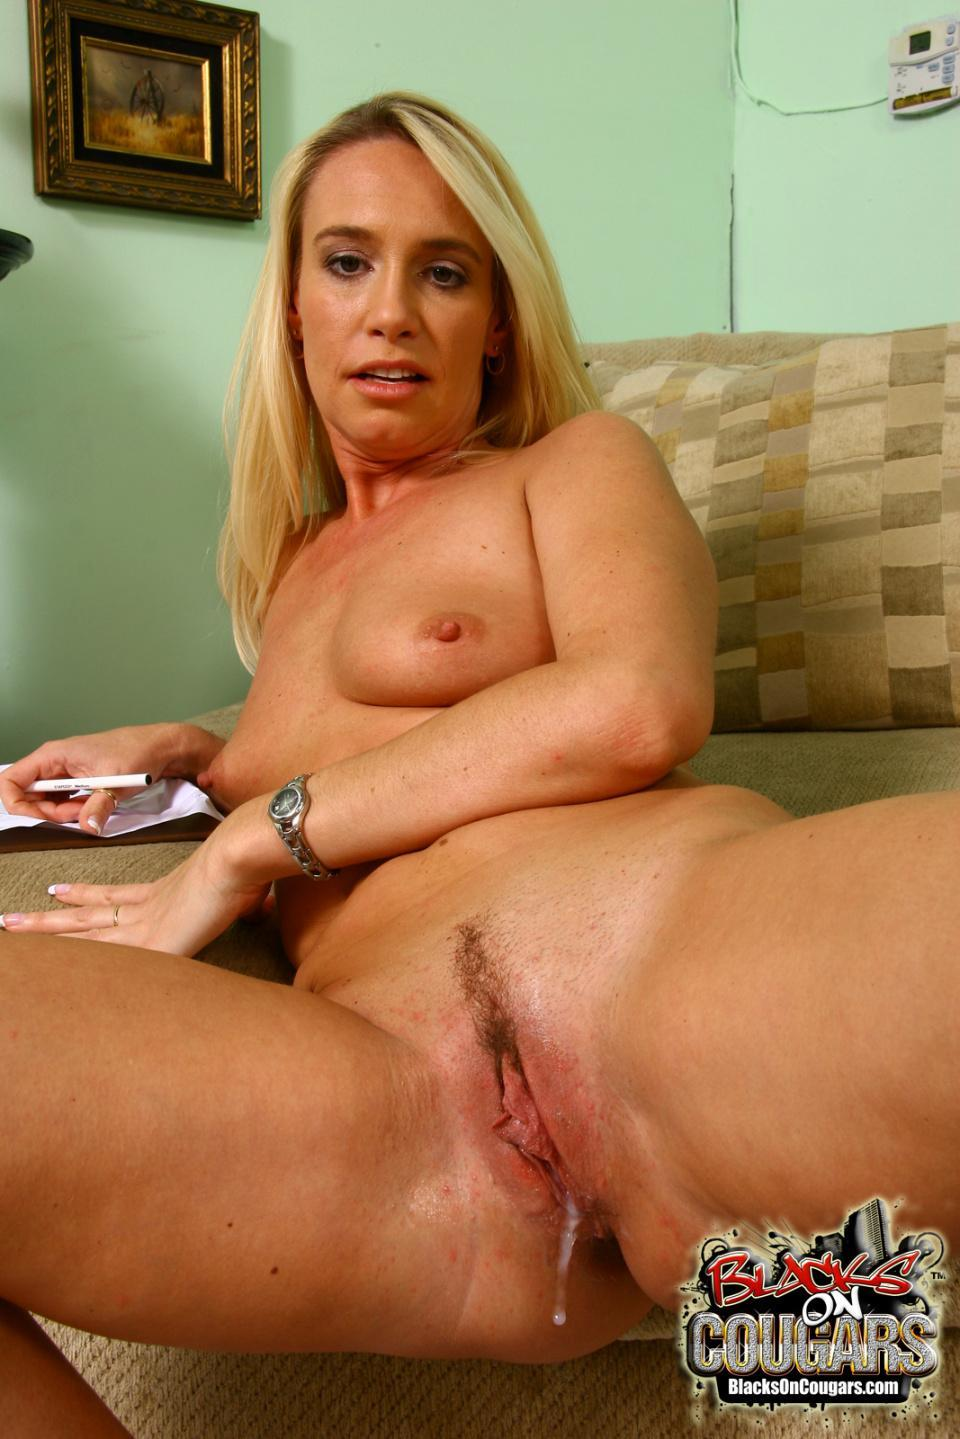 Girl oral sexs pictur